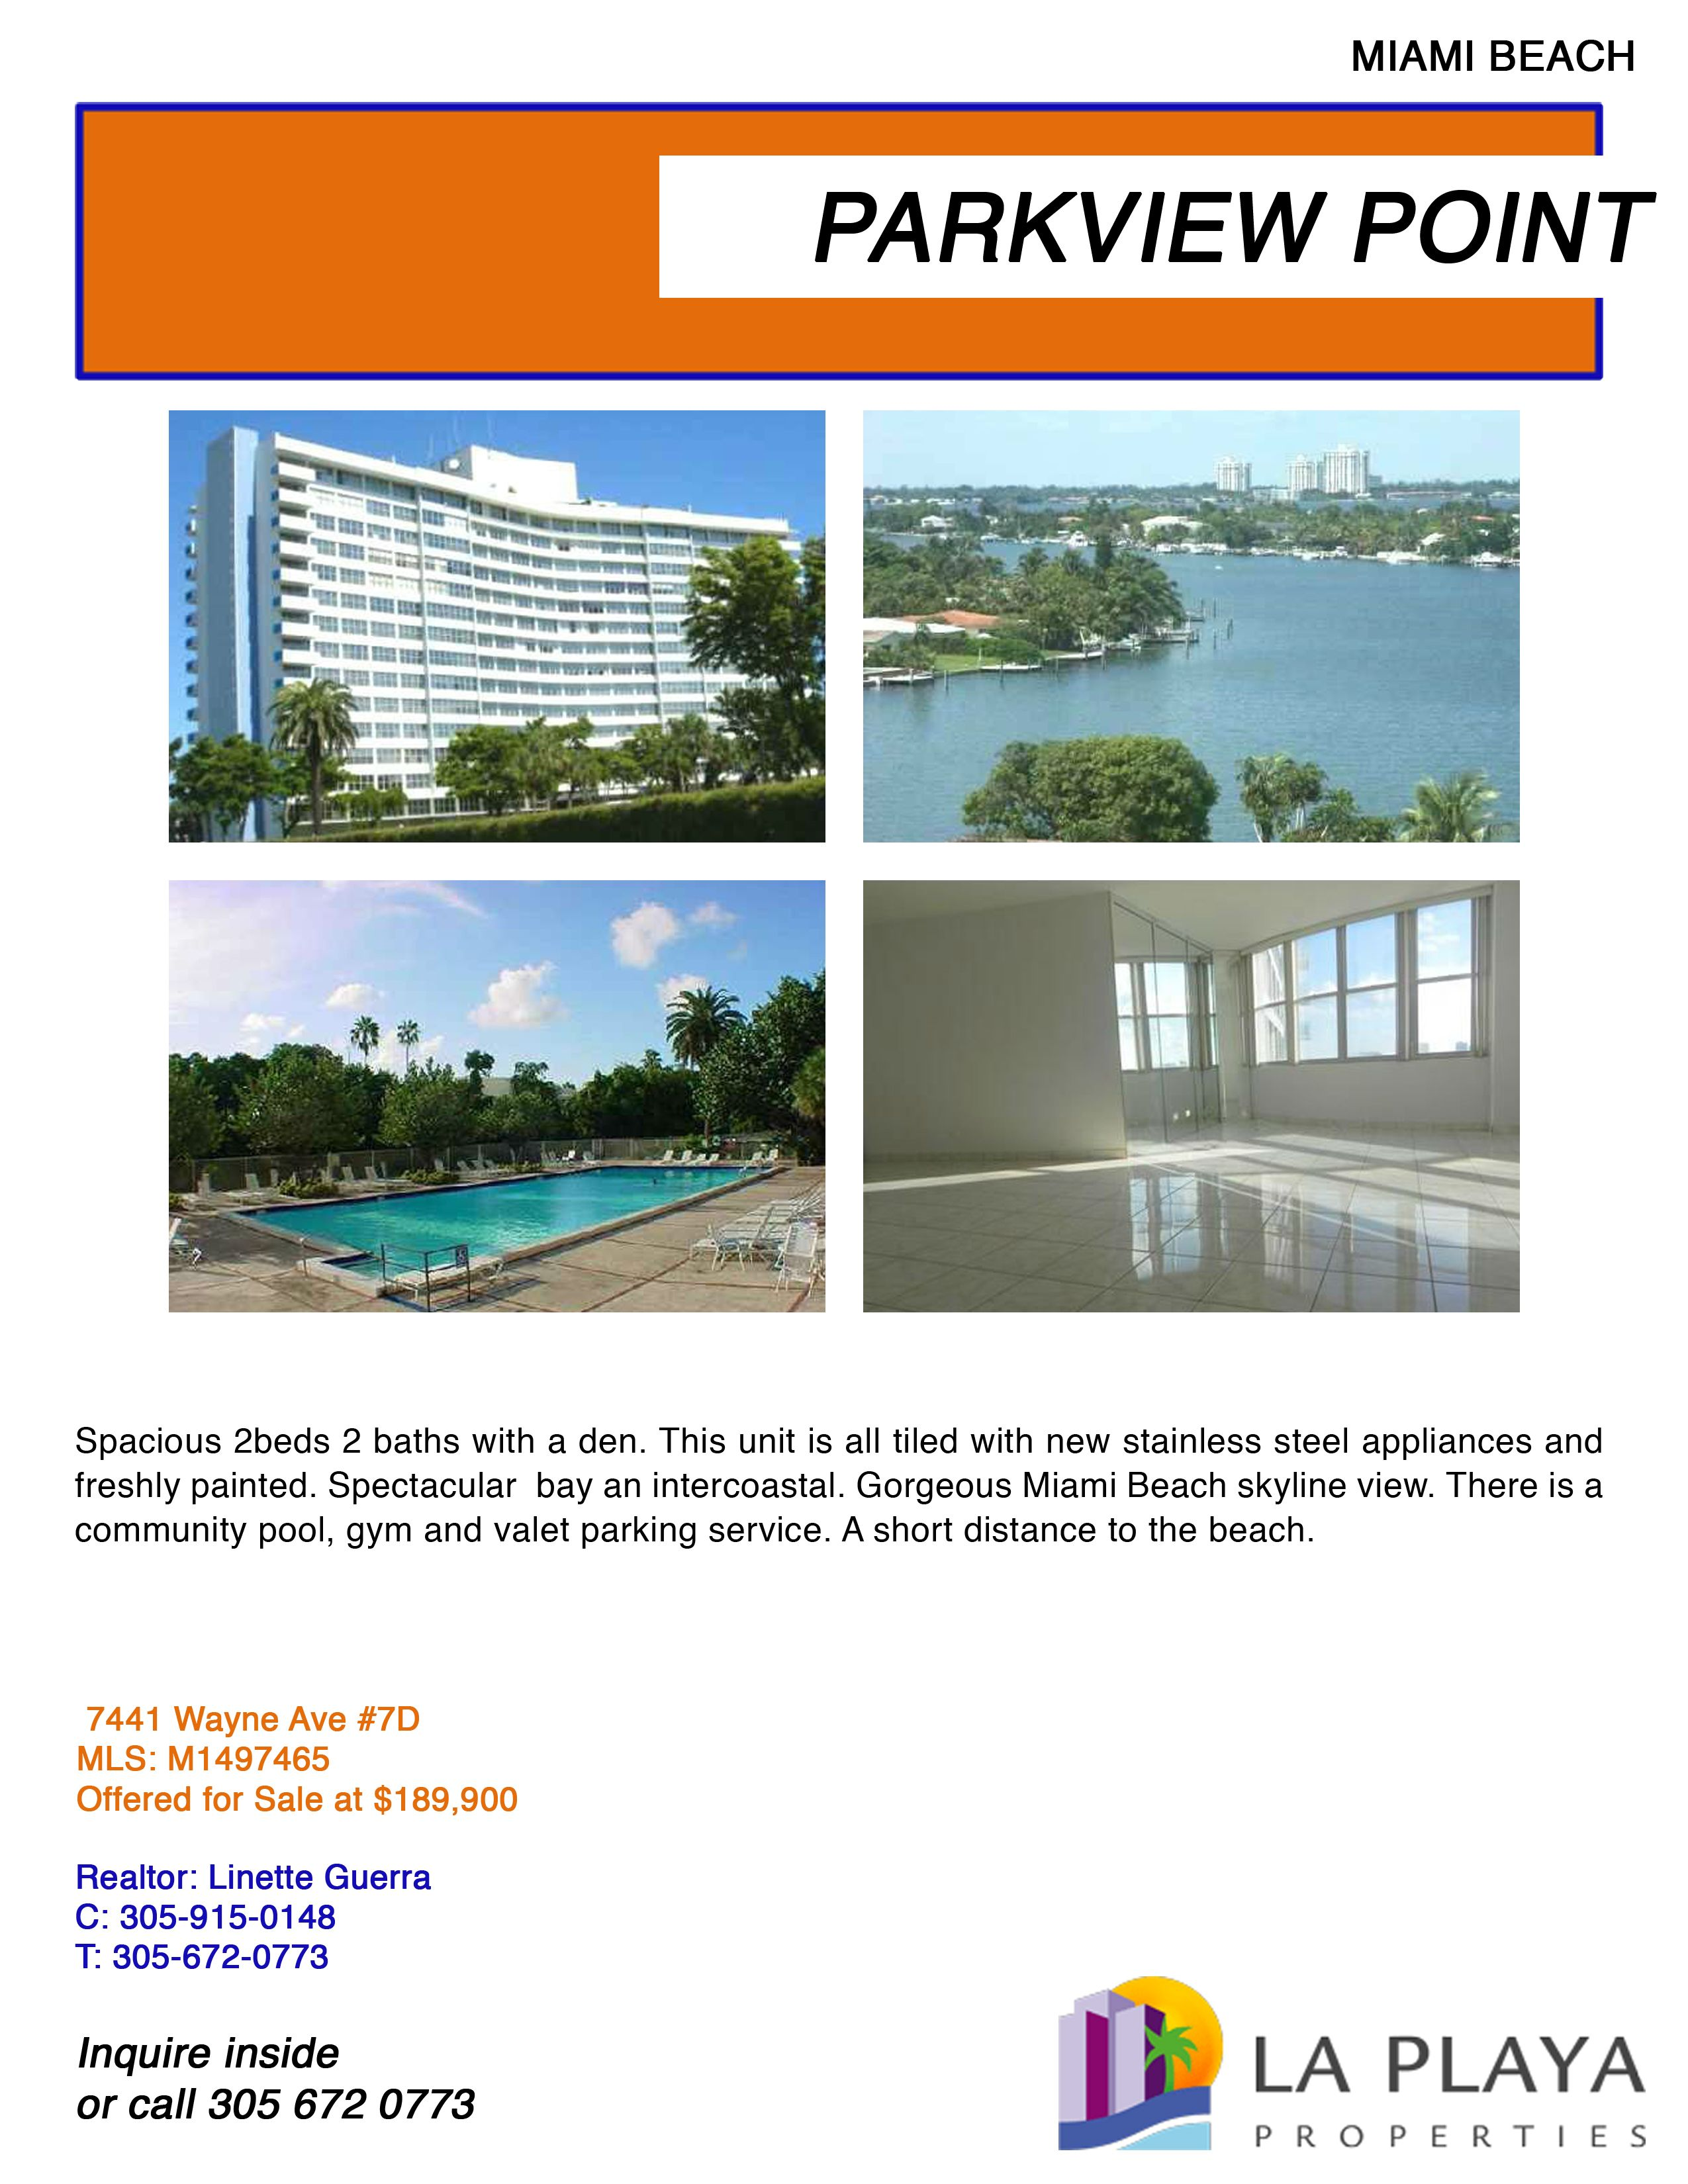 Spacious 2bed 2bath with a den. this unit is all tiled with new stainless steel appliances and freshly painted. Spectacular bay and inter coastal. For More information call La Playa Properties 305 672 0773. #Miami #RealEstate #MiamiRealEstate #ParkviewPoint #LaPlayaProperties